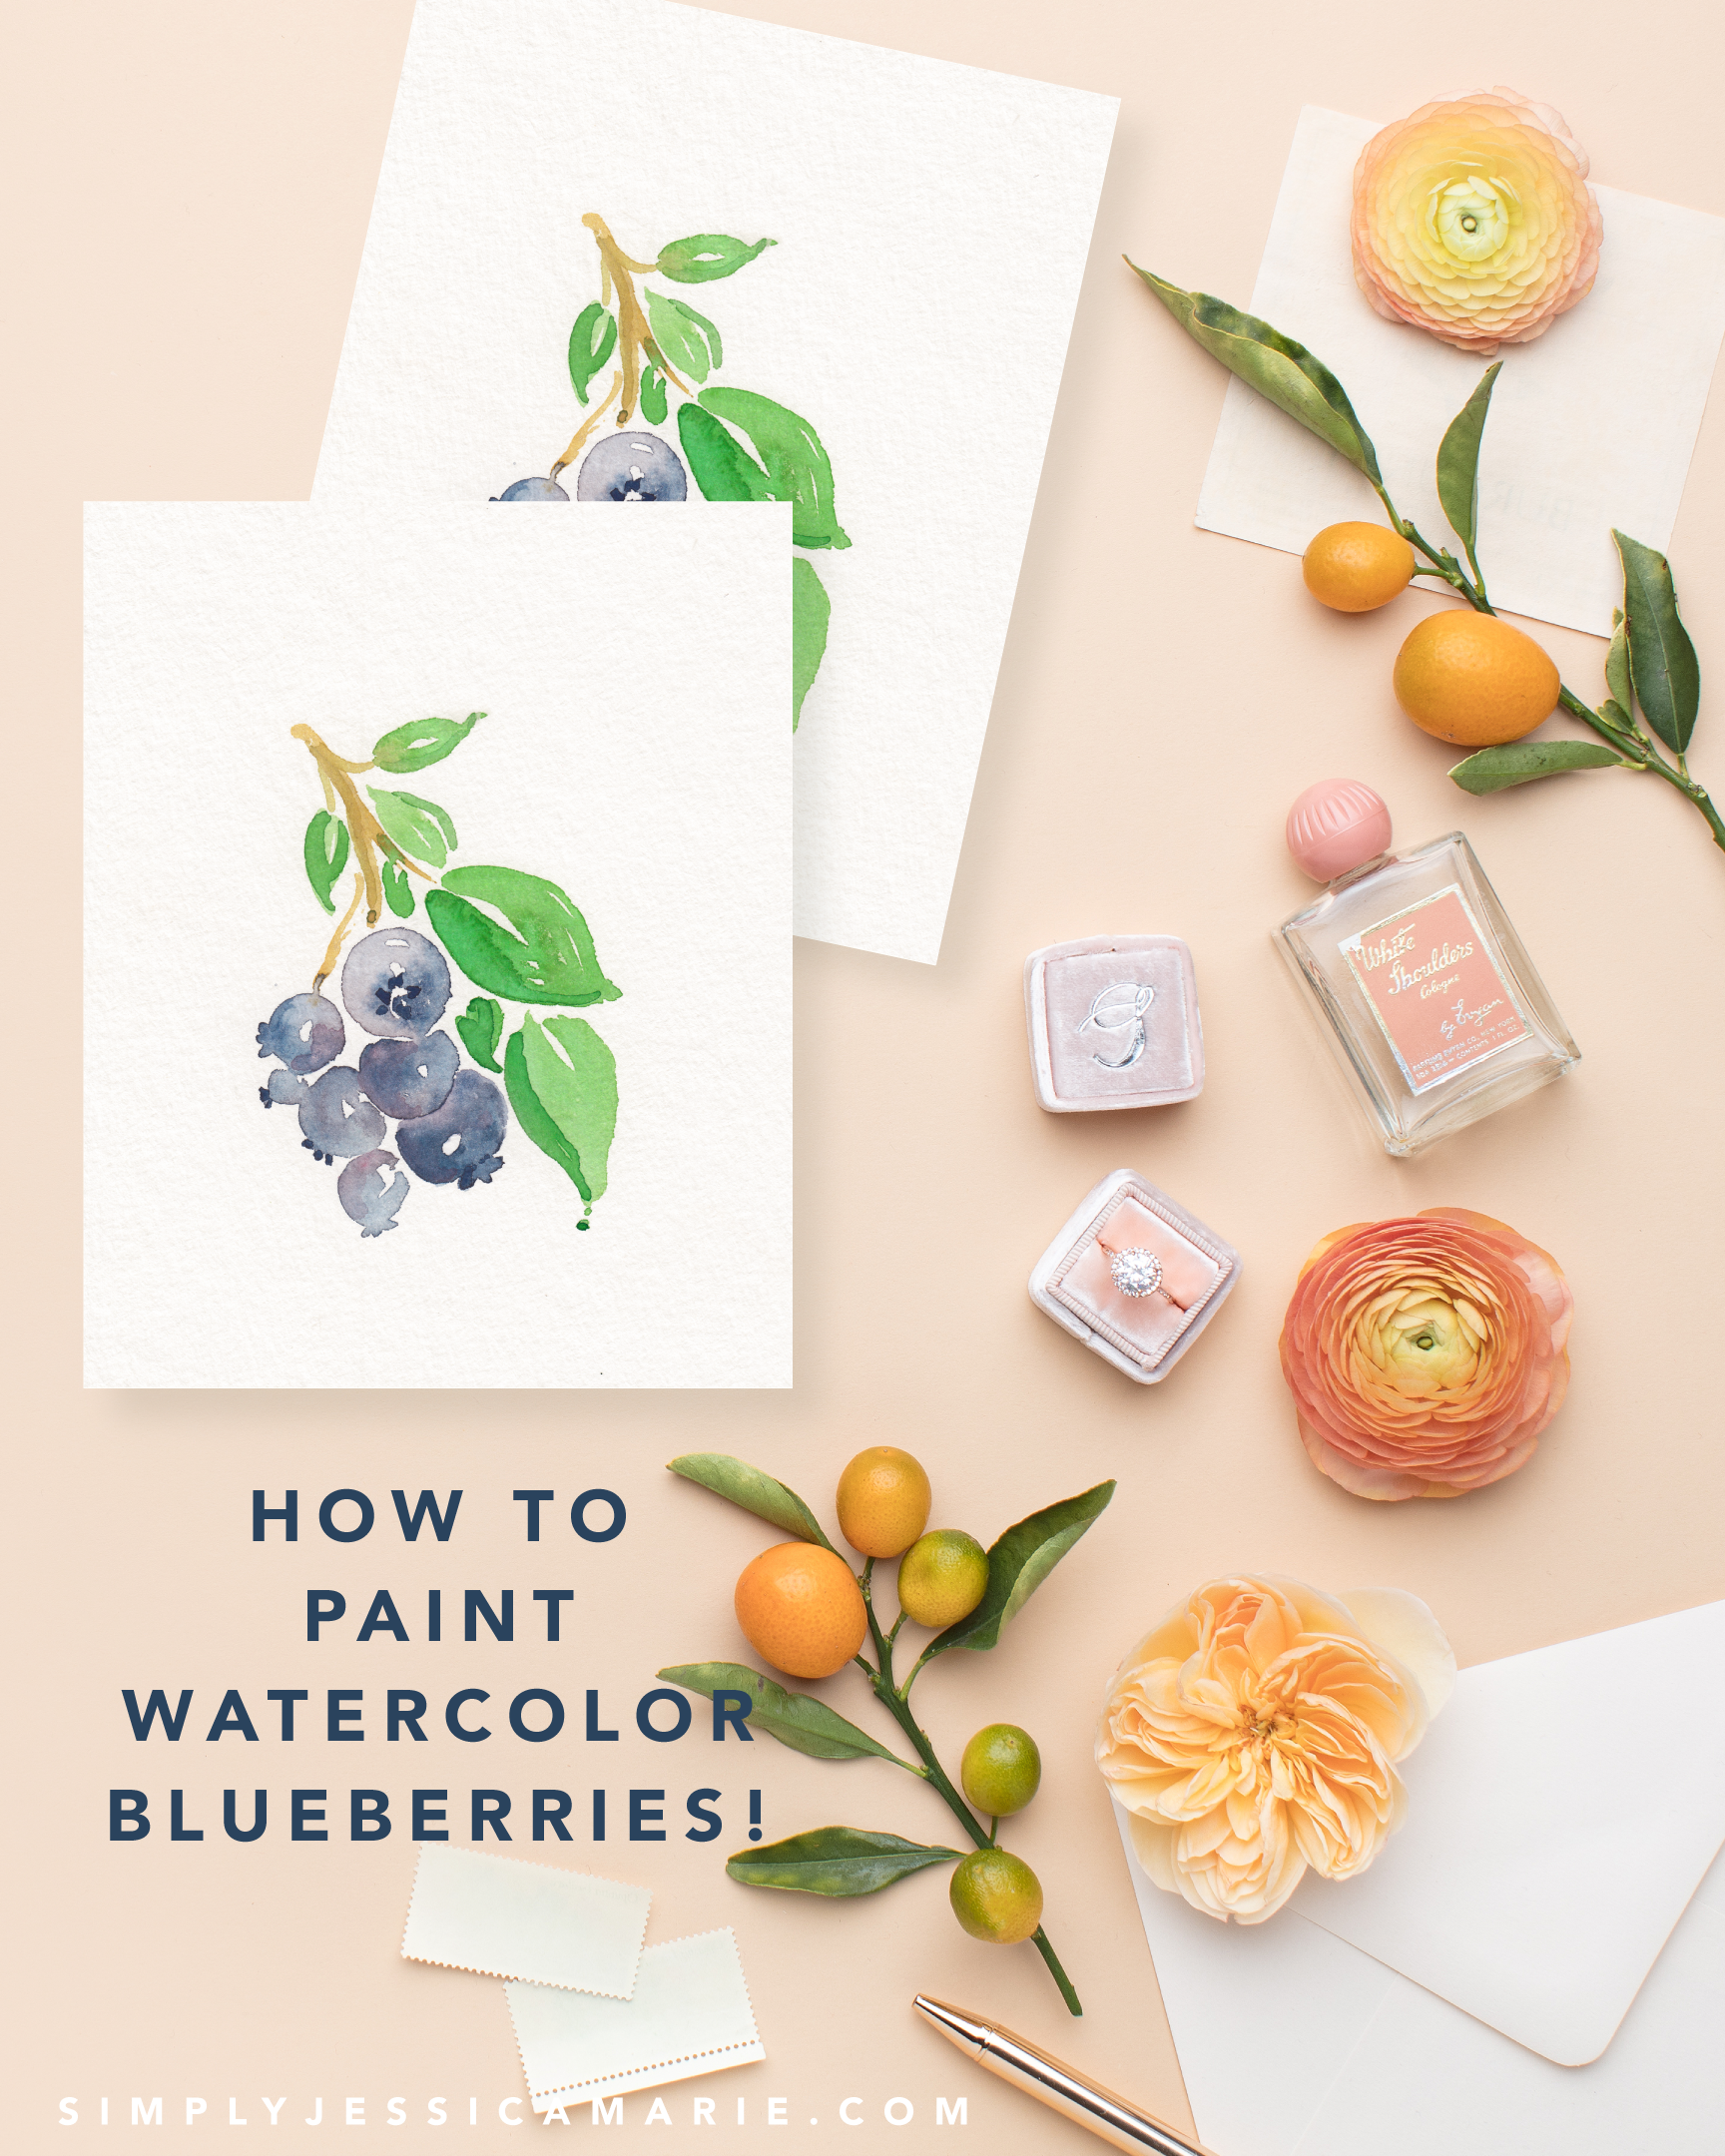 How-to-Paint-Watercolor-Blueberries-by-Simply-Jessica-Marie-_-Photo-by-SC-Stockshop.png